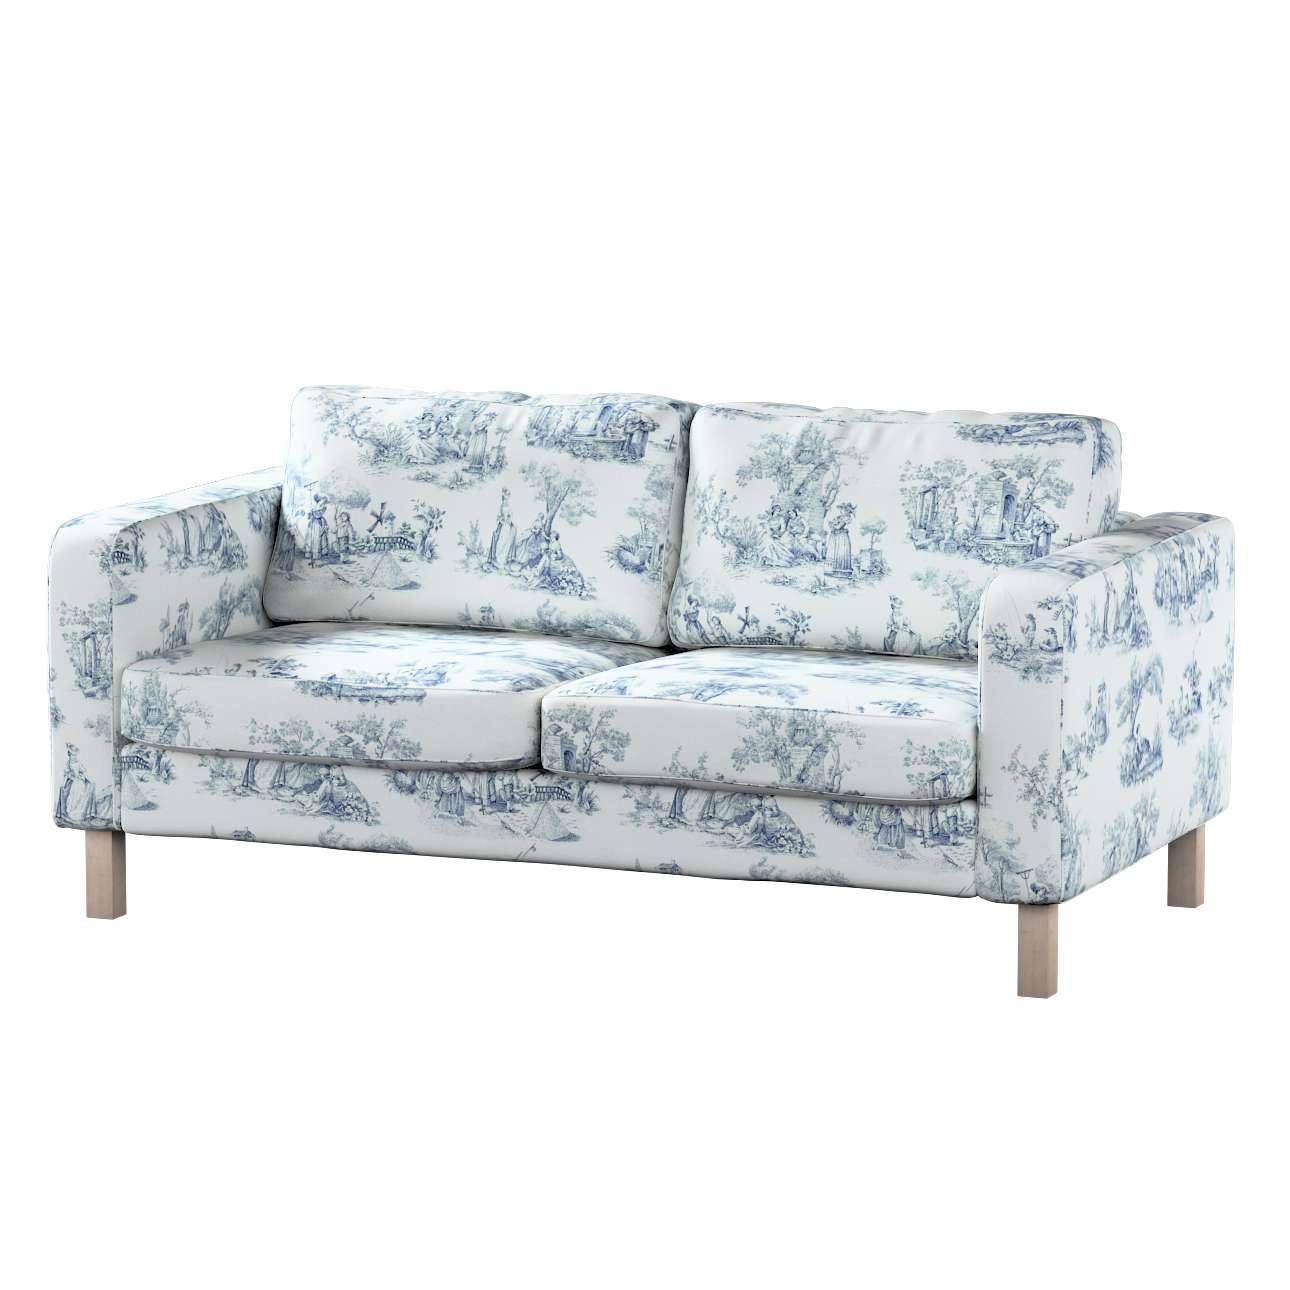 Sessel Queen Elizabeth Besten Bettsofa Design Ideen June 2017